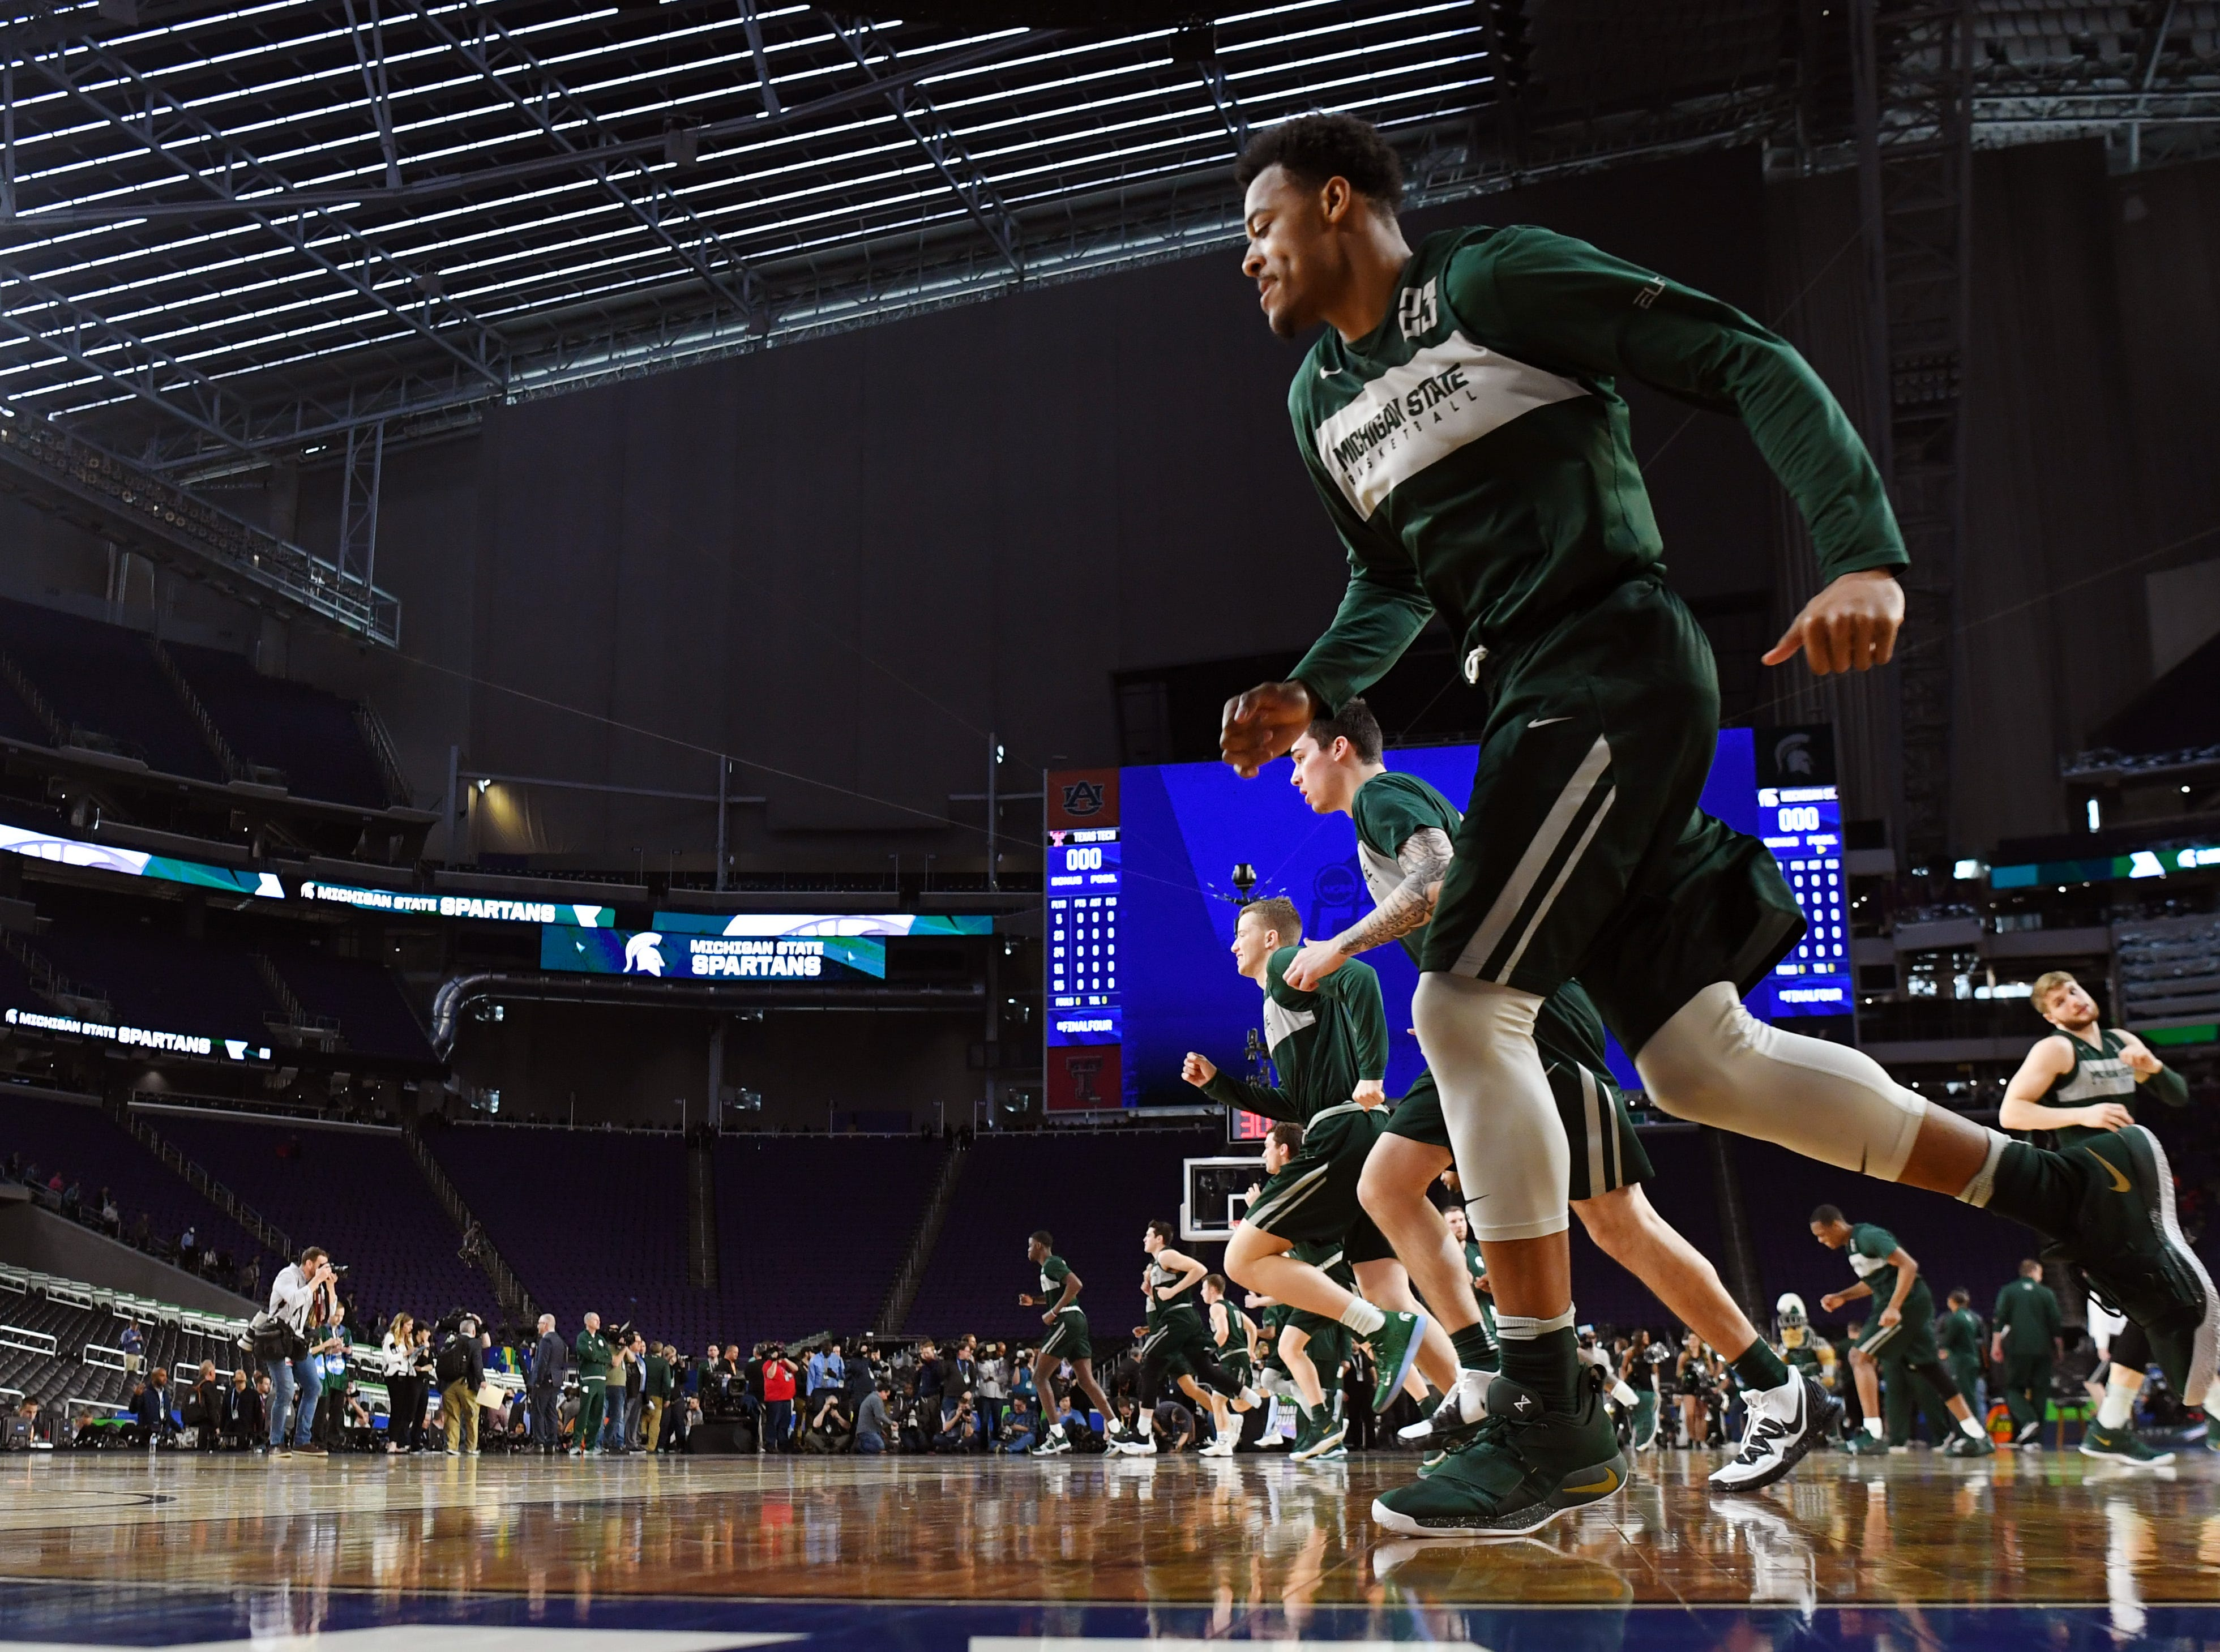 Apr 5, 2019; Minneapolis, MN, USA; Michigan State Spartans run a drill during practice for the 2019 men's Final Four at US Bank Stadium. Mandatory Credit: Bob Donnan-USA TODAY Sports